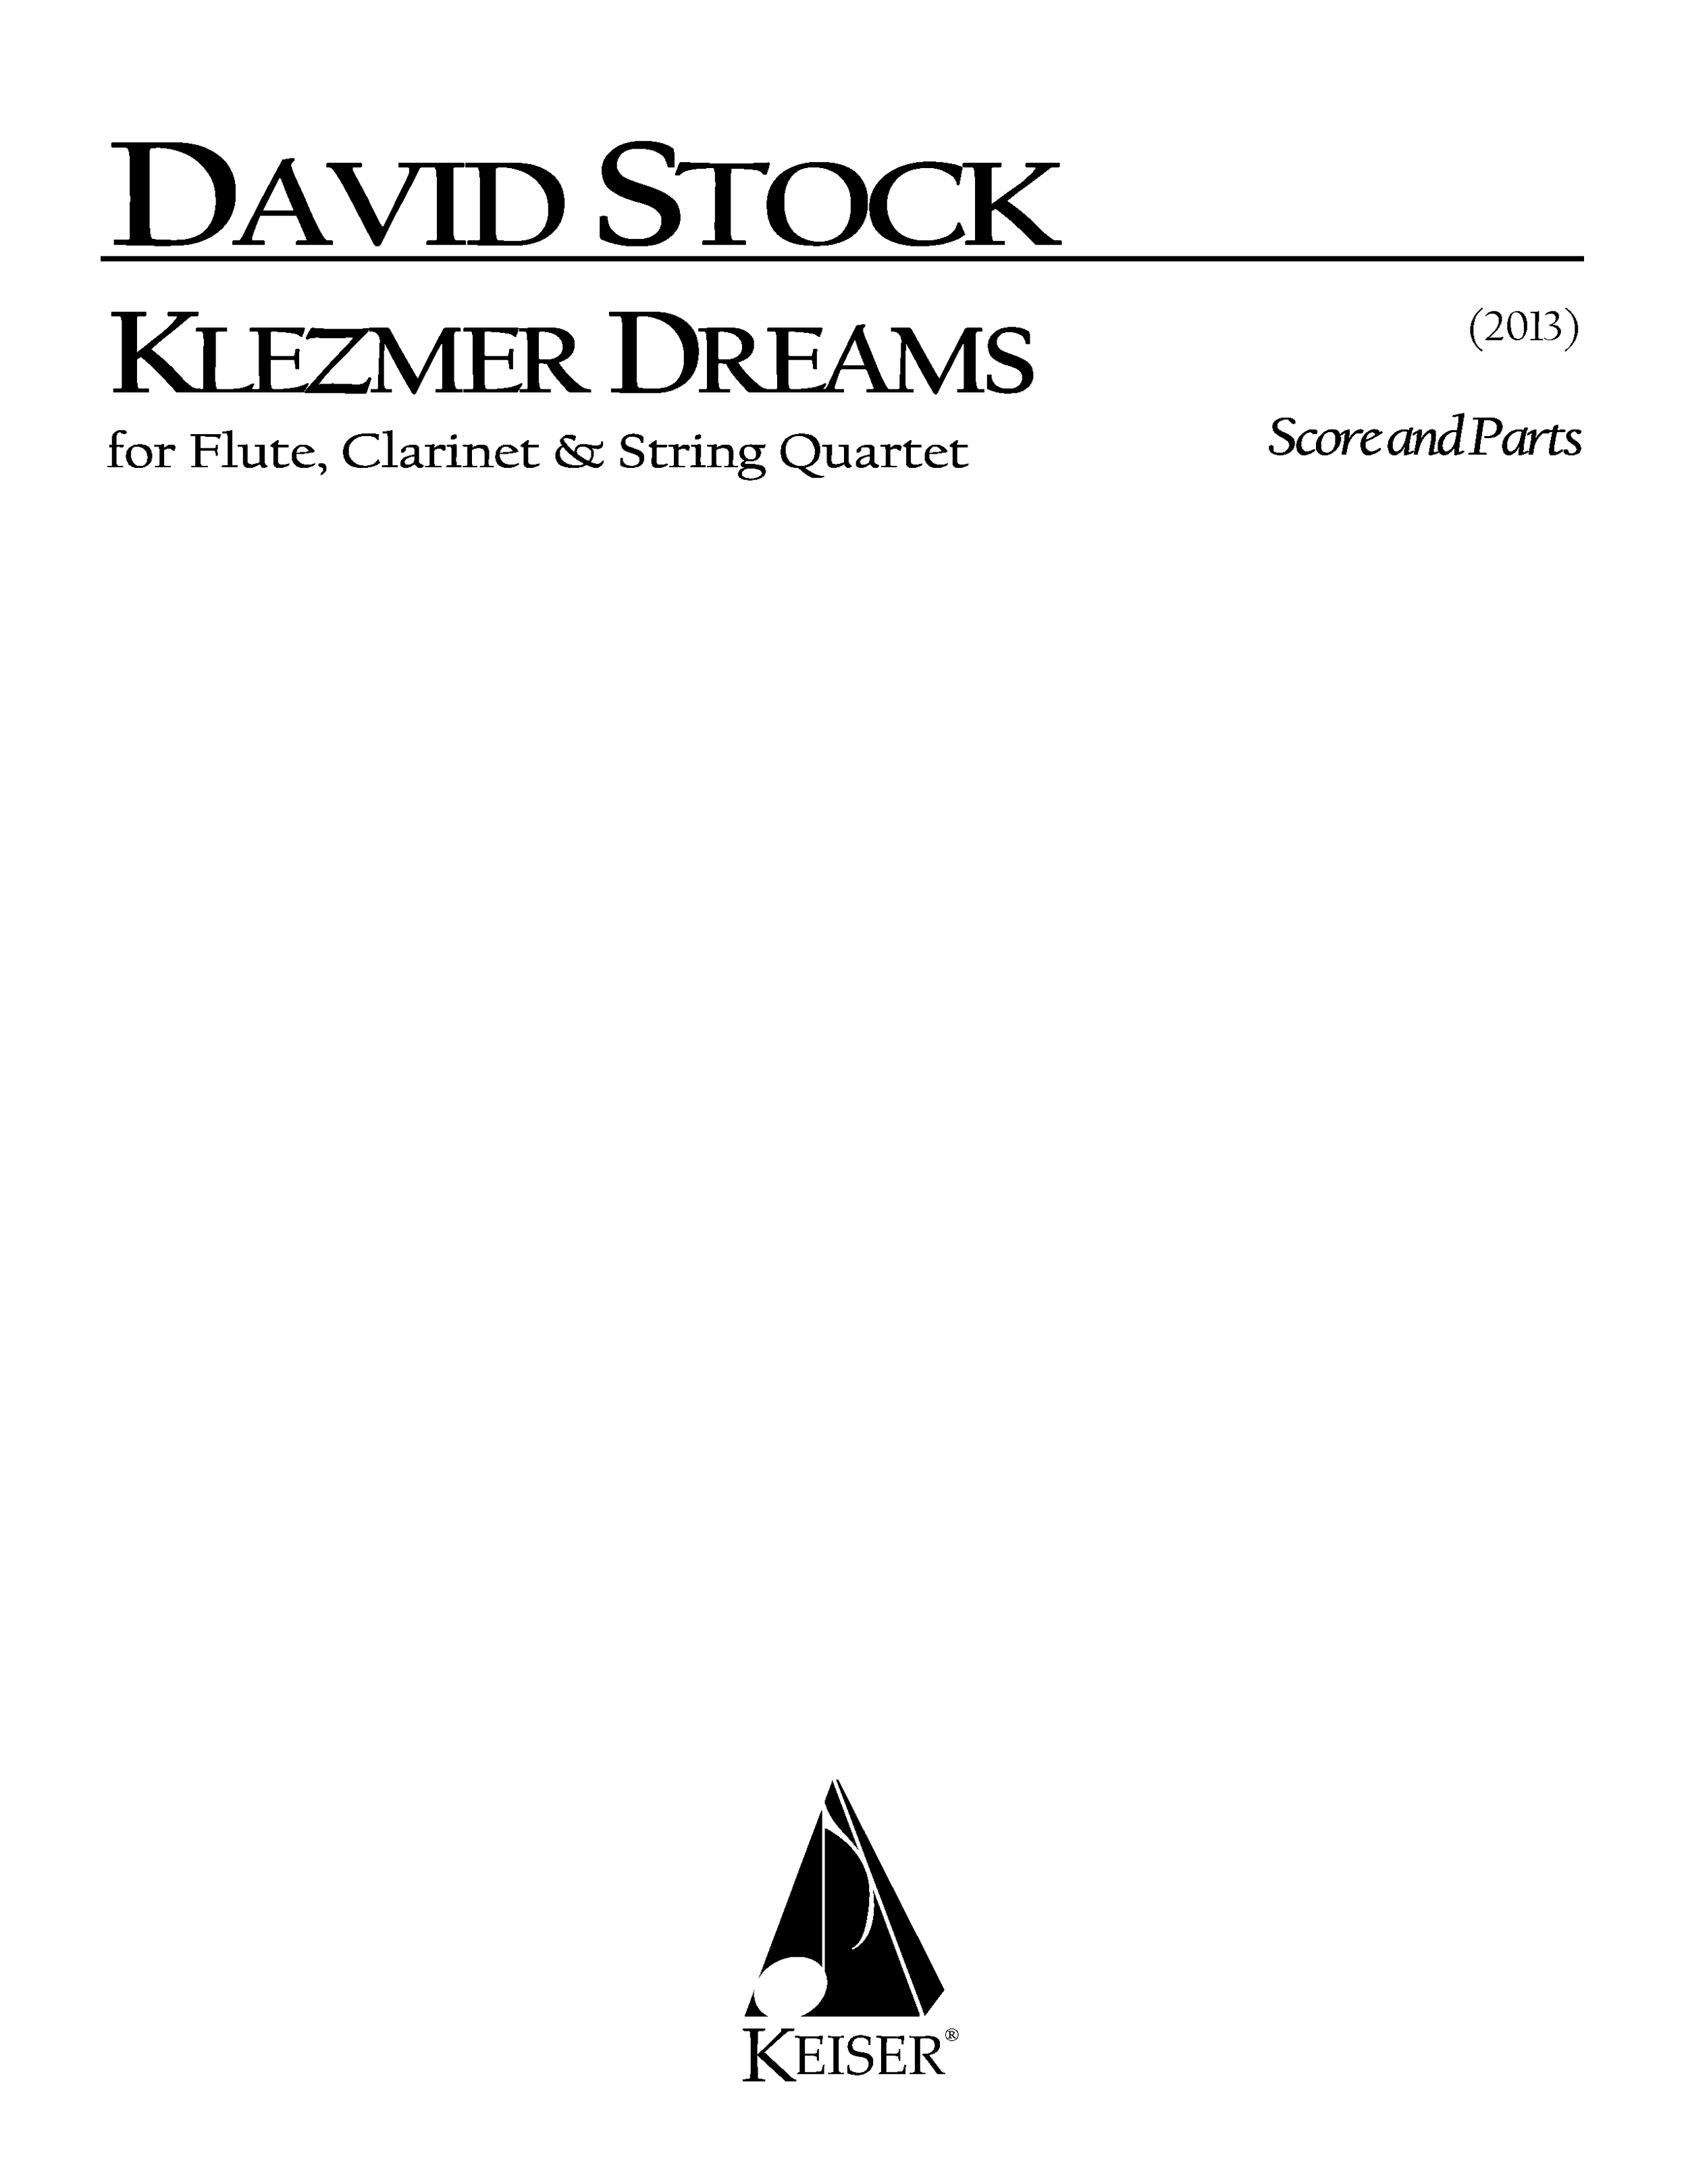 Klezmer Dreams (2013) - Flute(dPicc), Clarinet, 2 Violin, Viola, CelloRent/Buy: Keiser Music